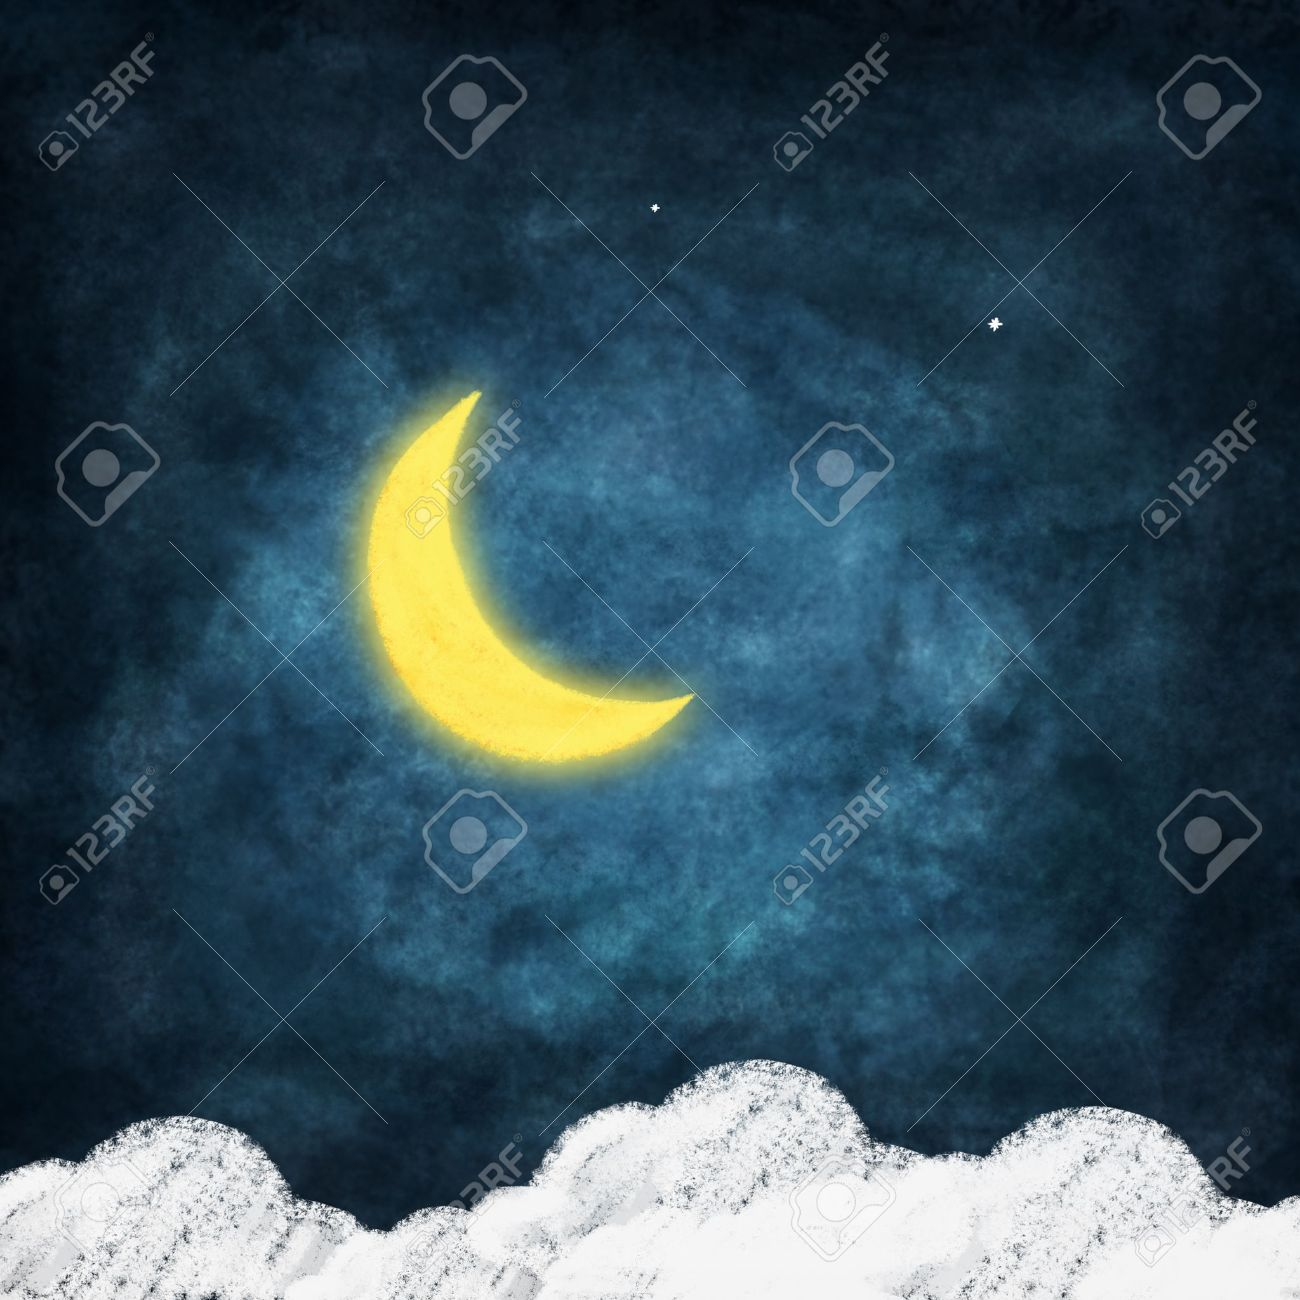 weather icon drawing on chalkboard ,night time,smile moon Stock Photo - 11823215